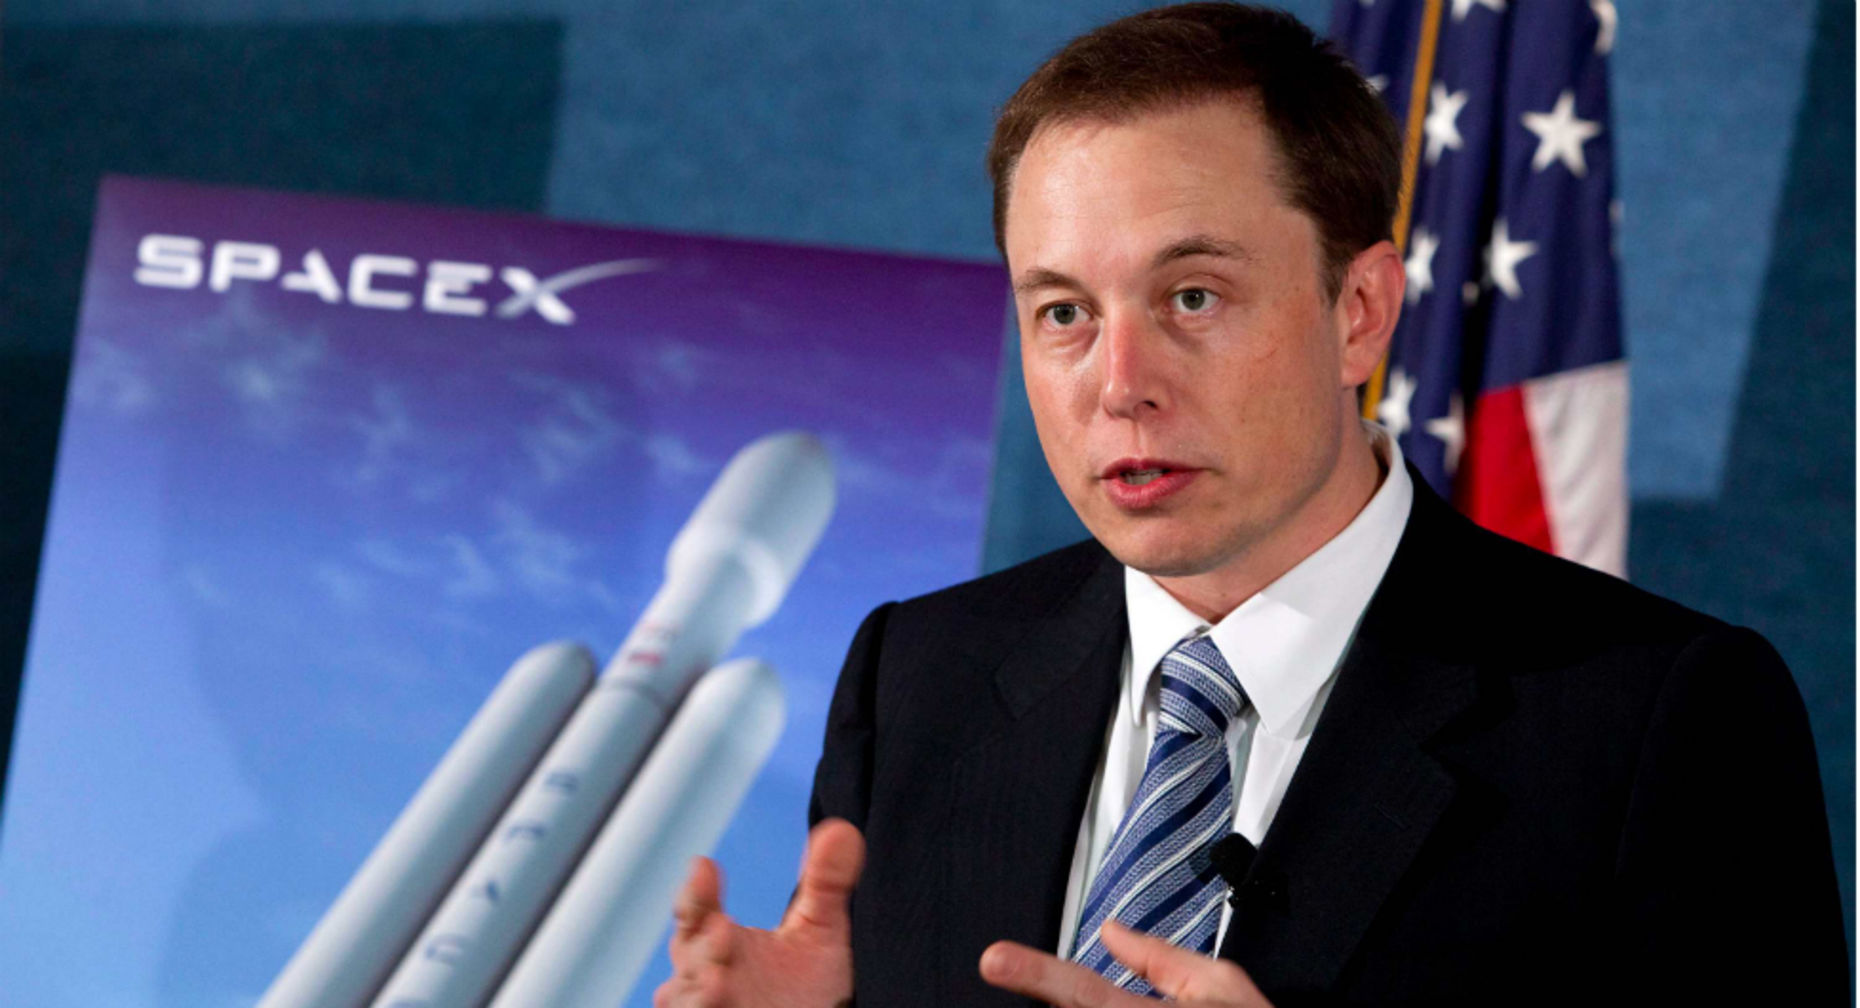 Elon Musk, founder of SpaceX. Photo by Bloomberg.